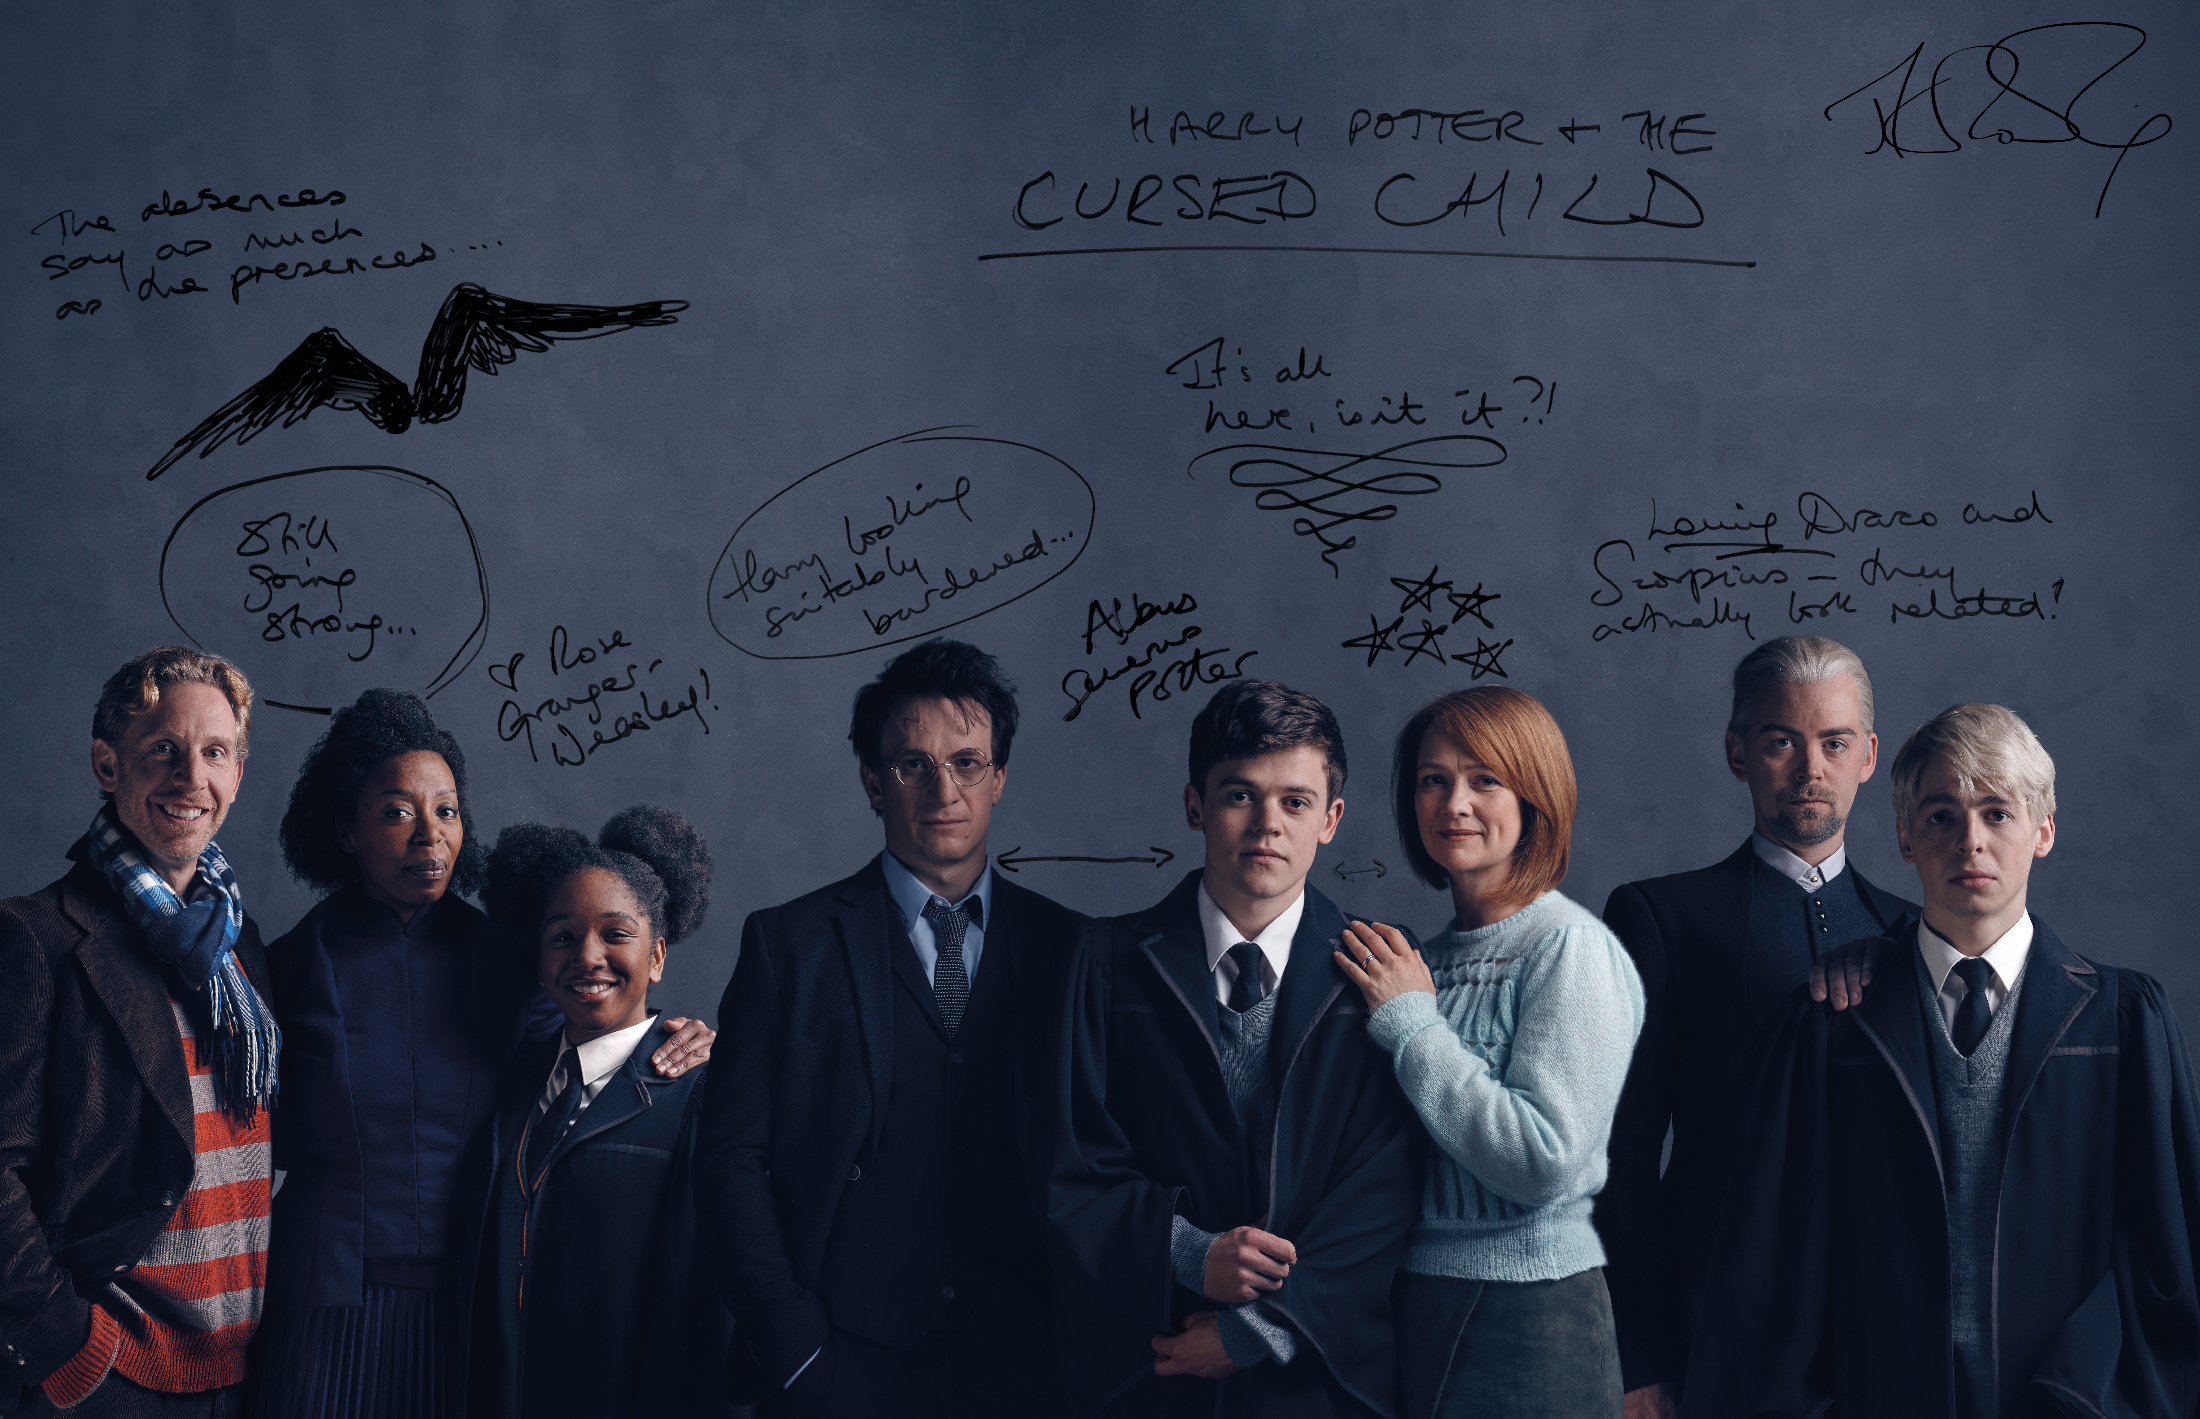 Resultado de imagem para harry potter and the cursed child